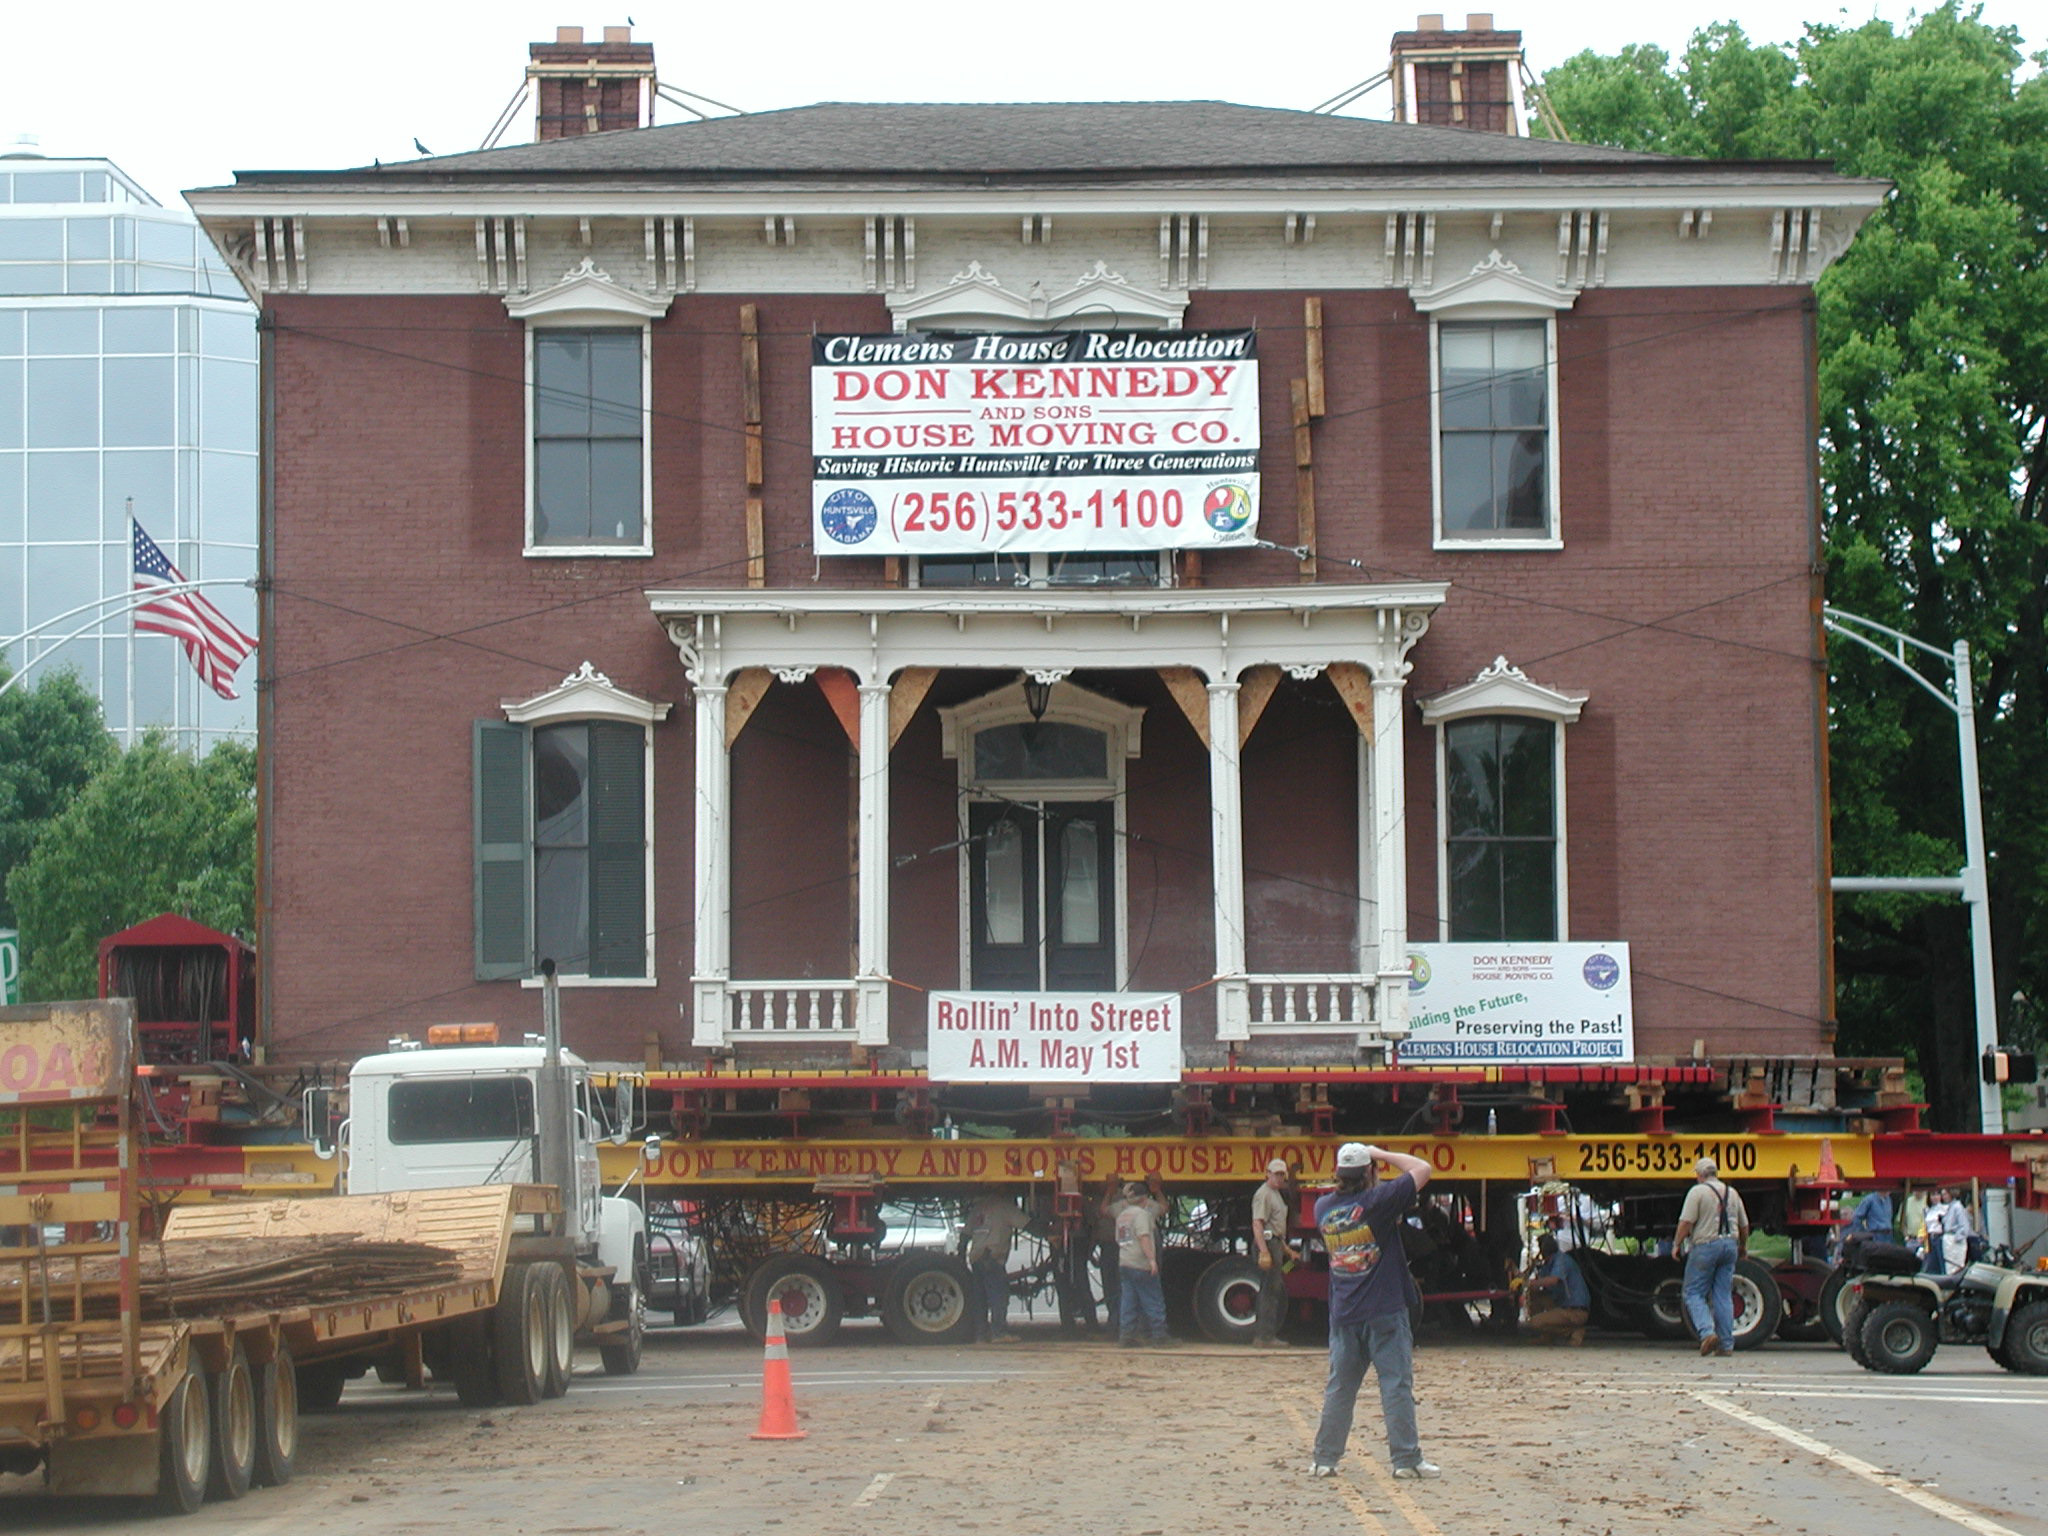 Huntsvilles's 1820s era-Jeremiah Clemens house was saved from inappropriate development, moved, and reused as offices.